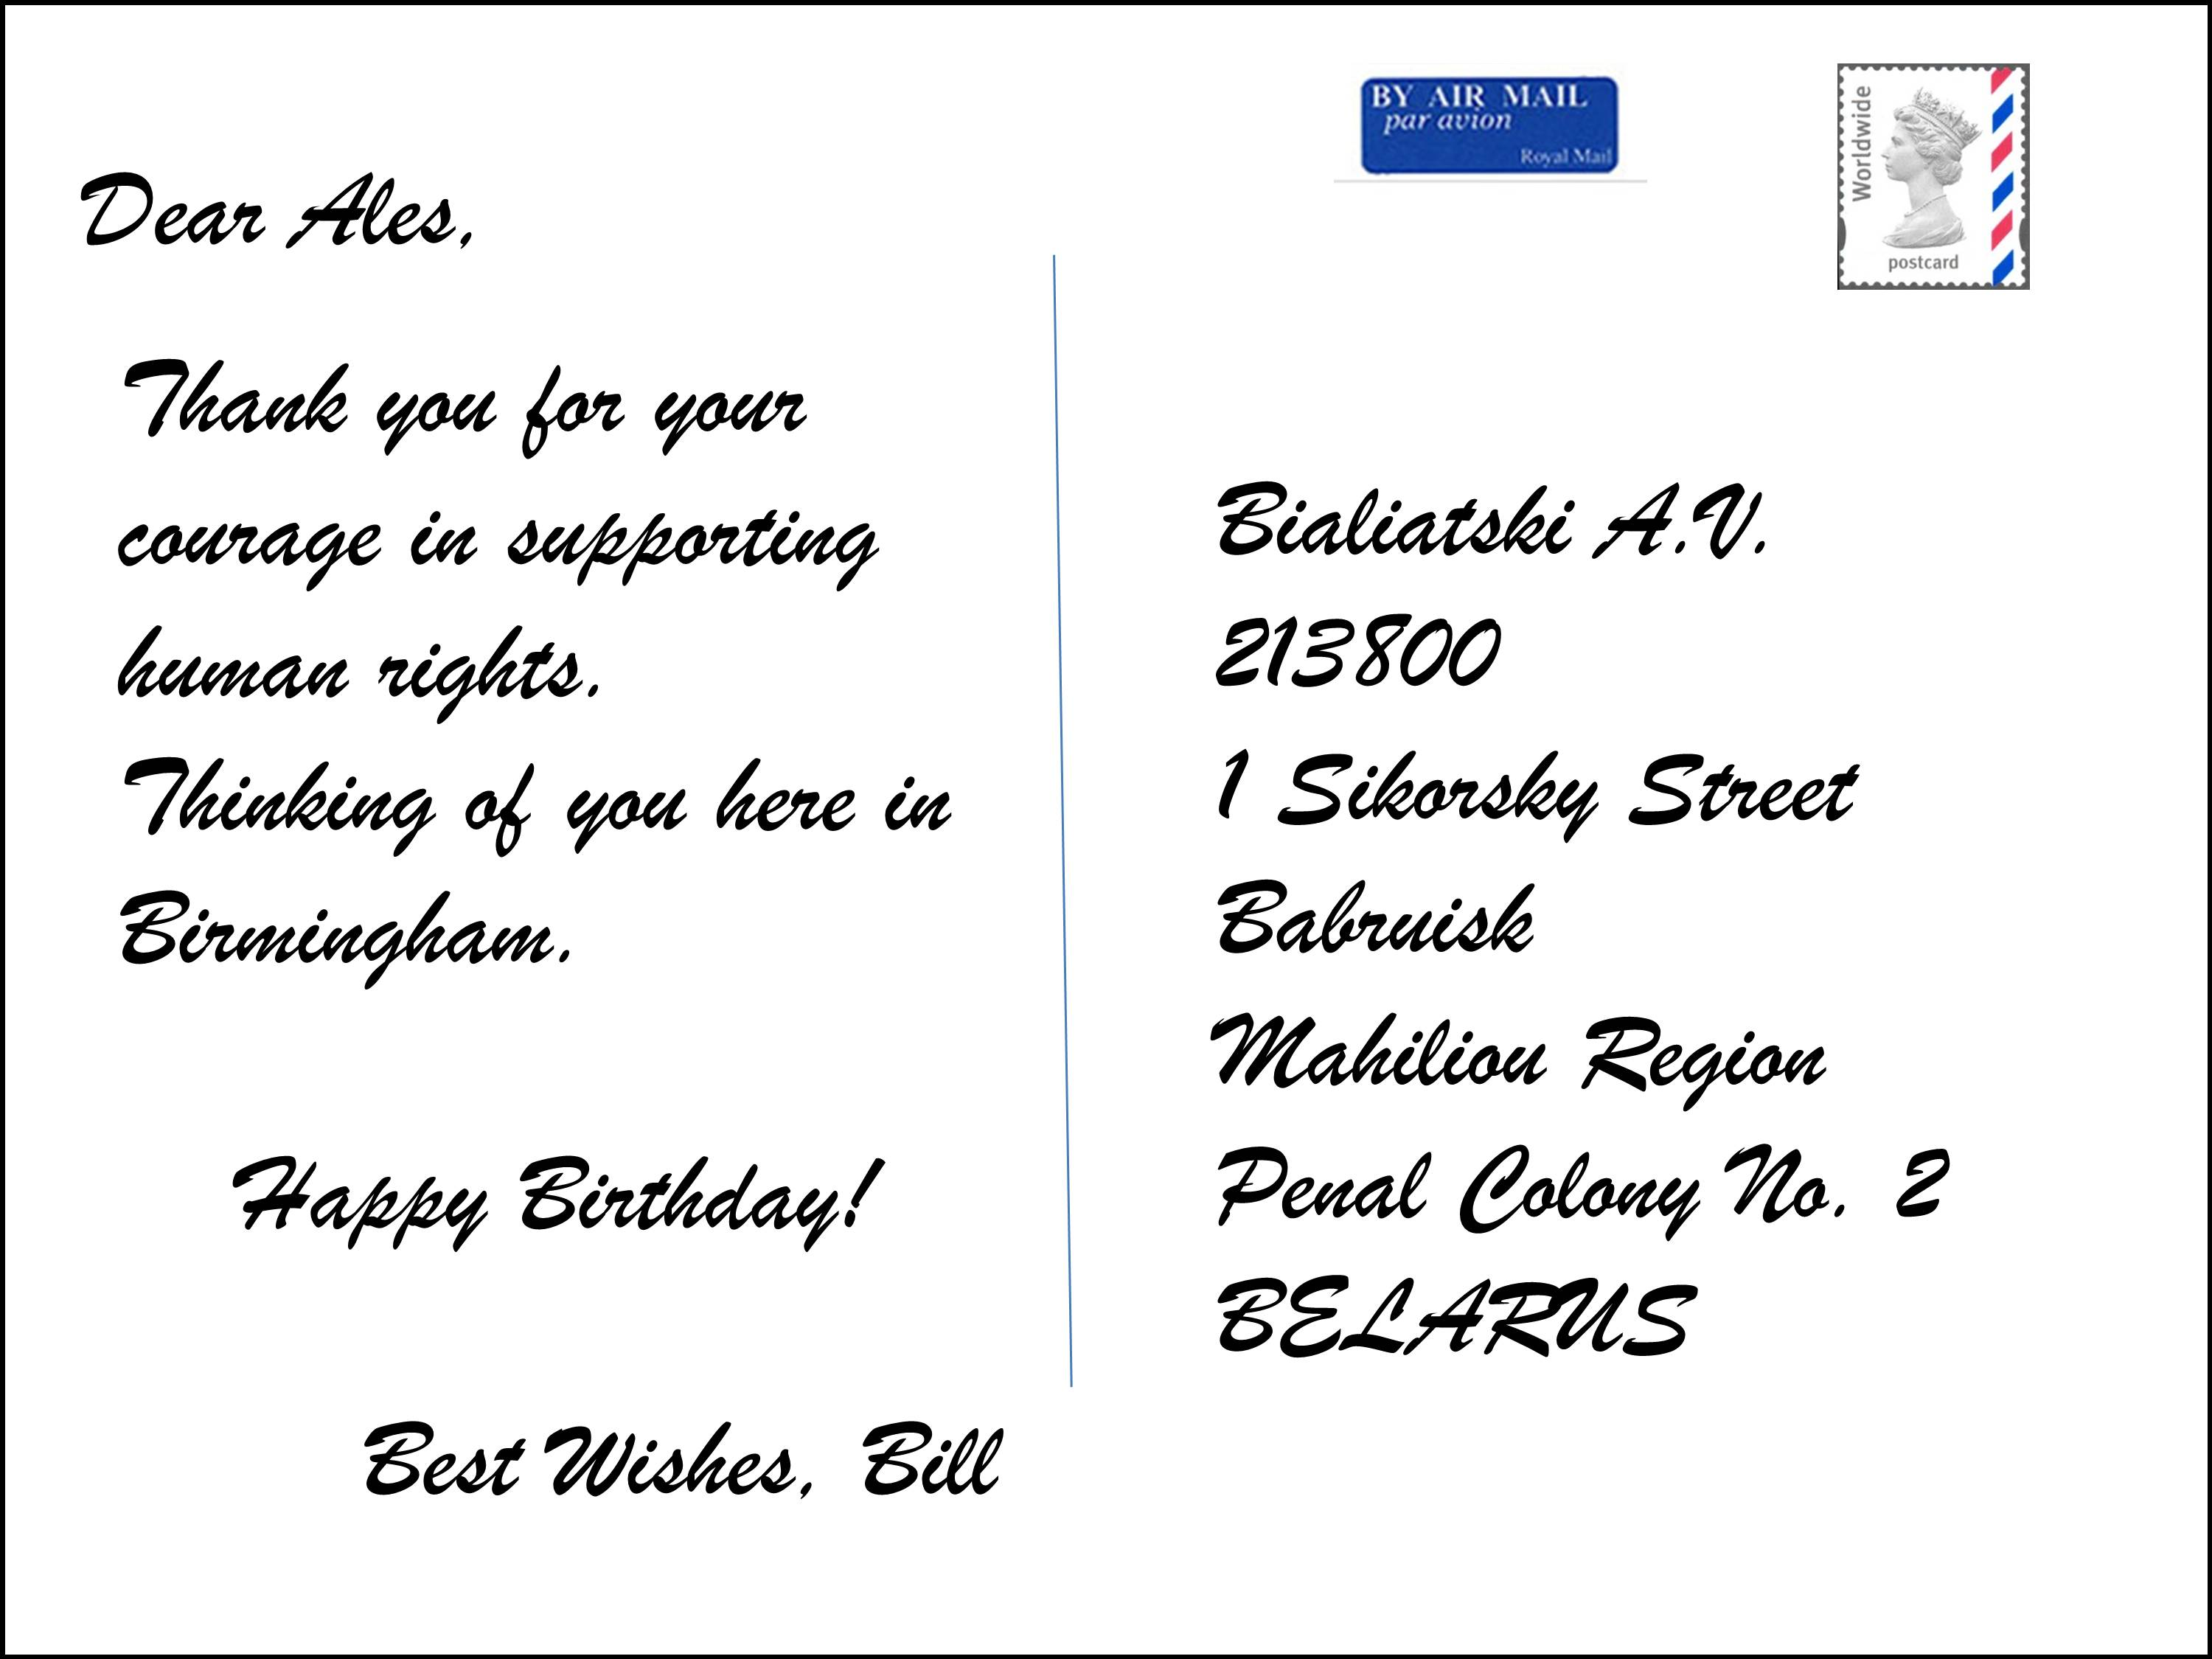 text birthday greetings message ; ales-address-on-postcard2